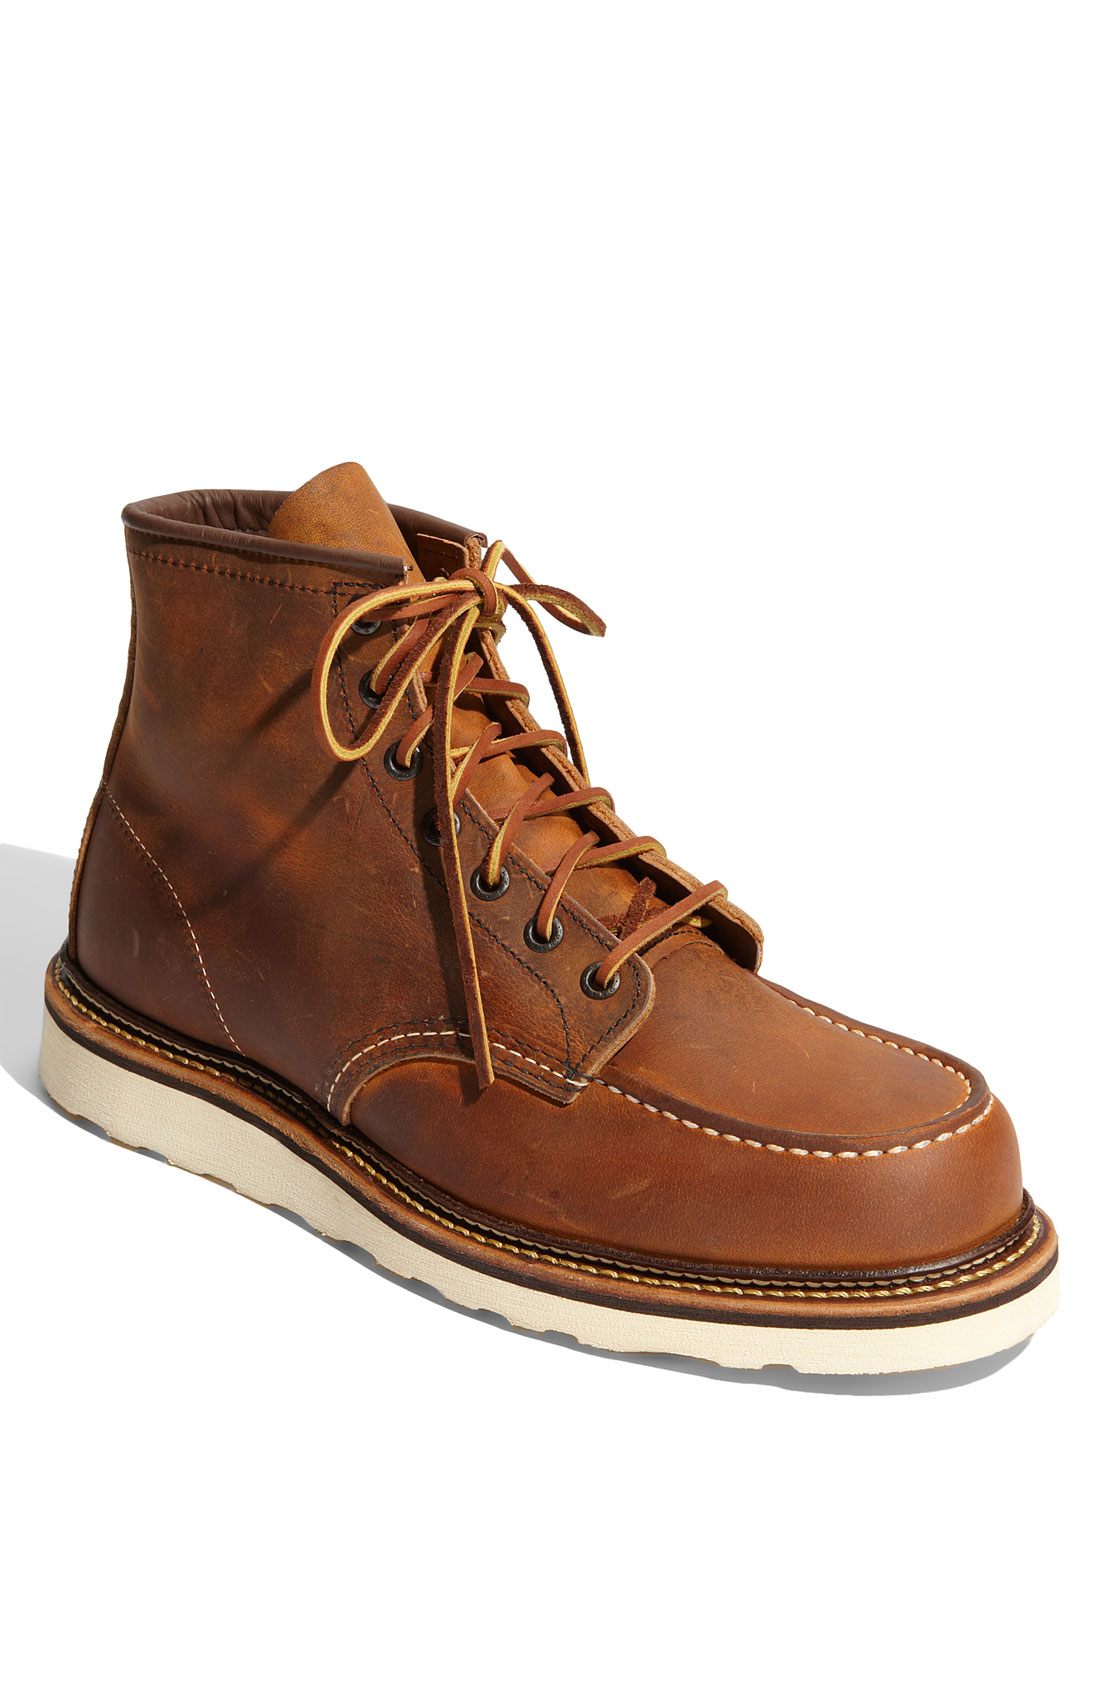 Red Wing Boots On Sale 30KPEOzX